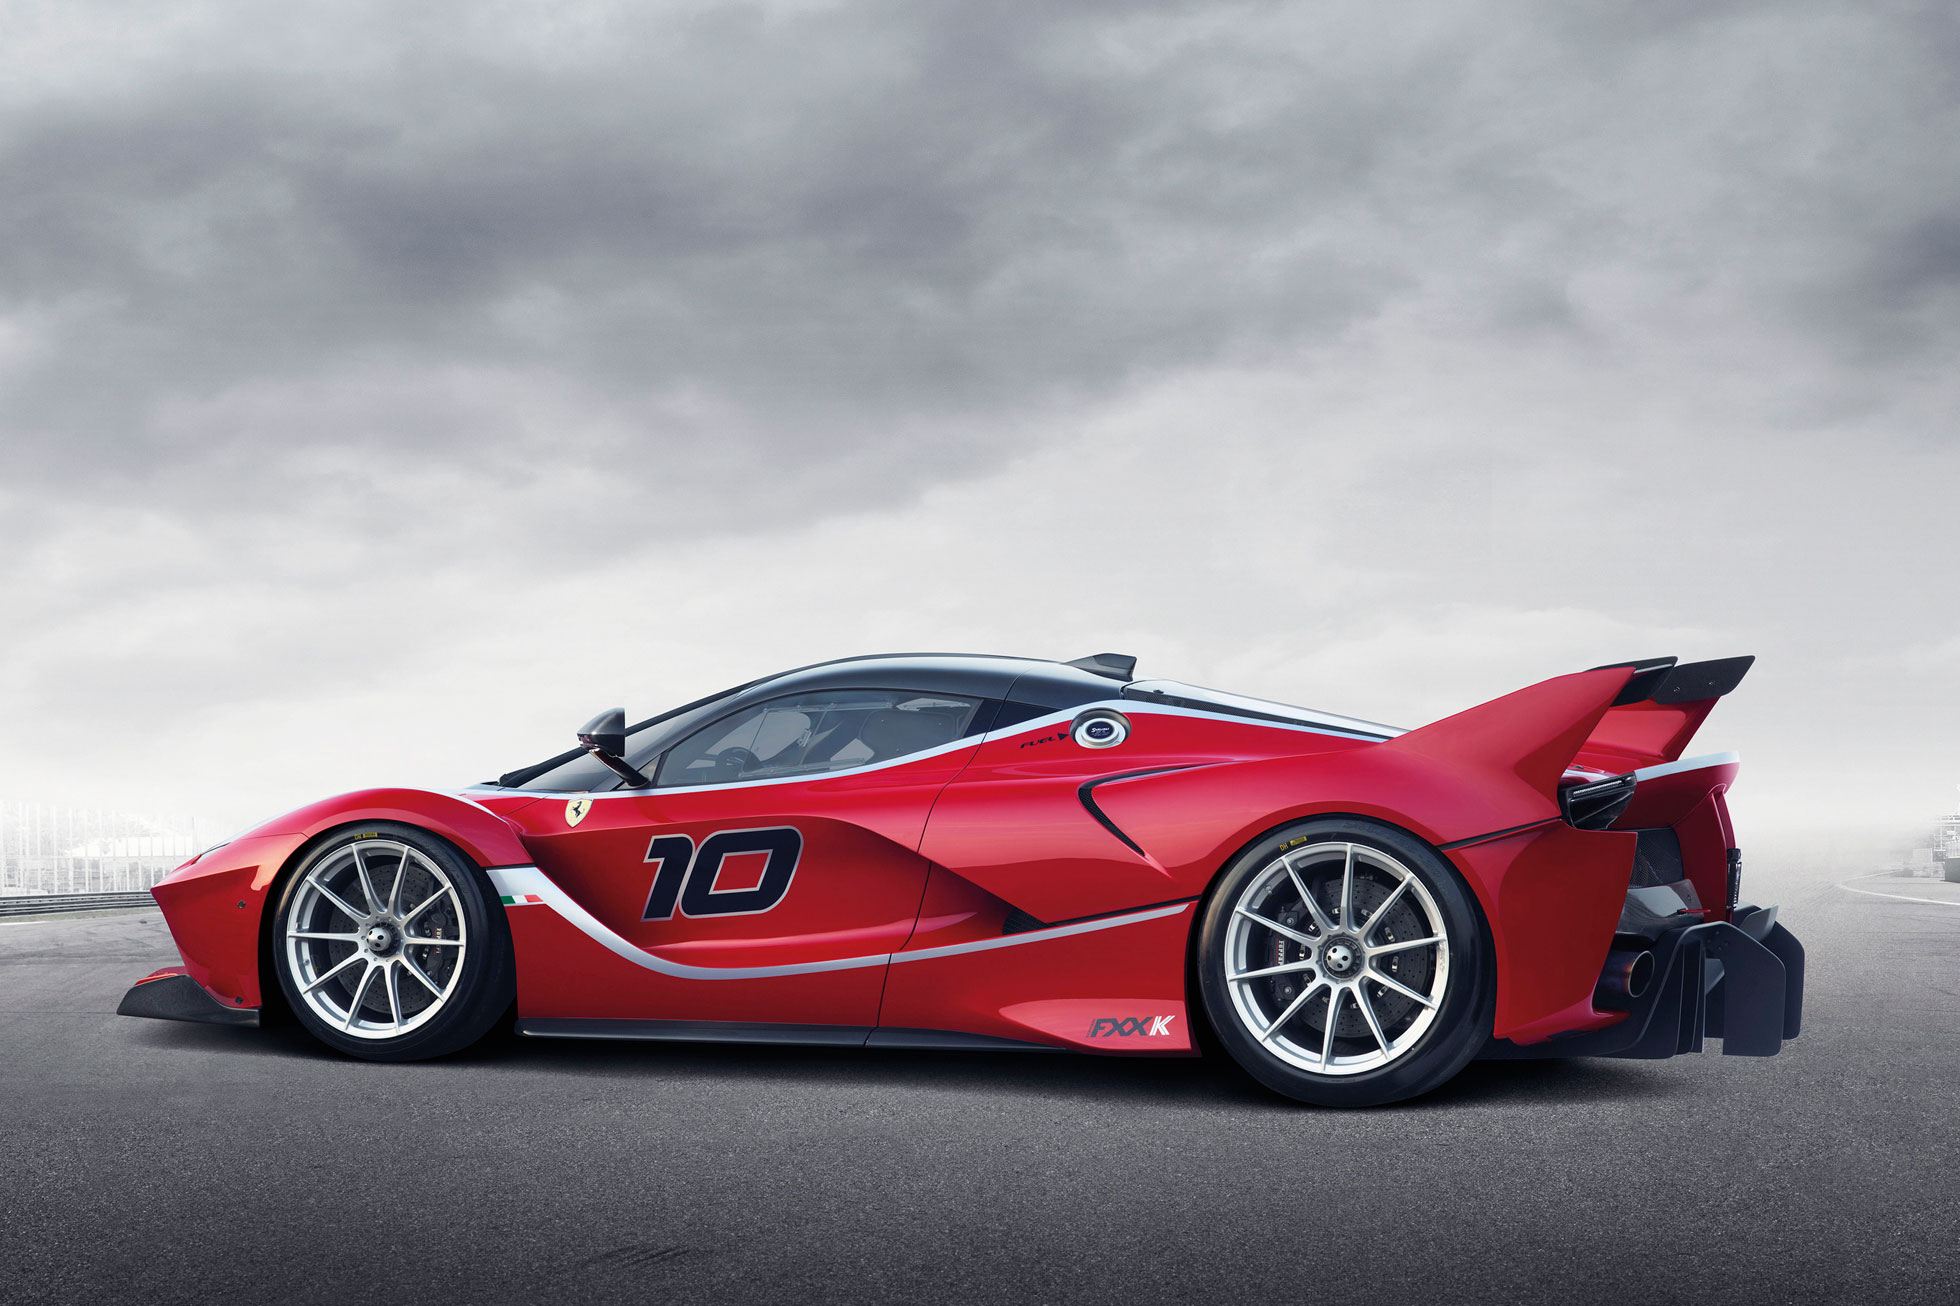 http://www.motoringresearch.com/wp-content/uploads/2014/12/Ferrari_FXX_K_2.jpg